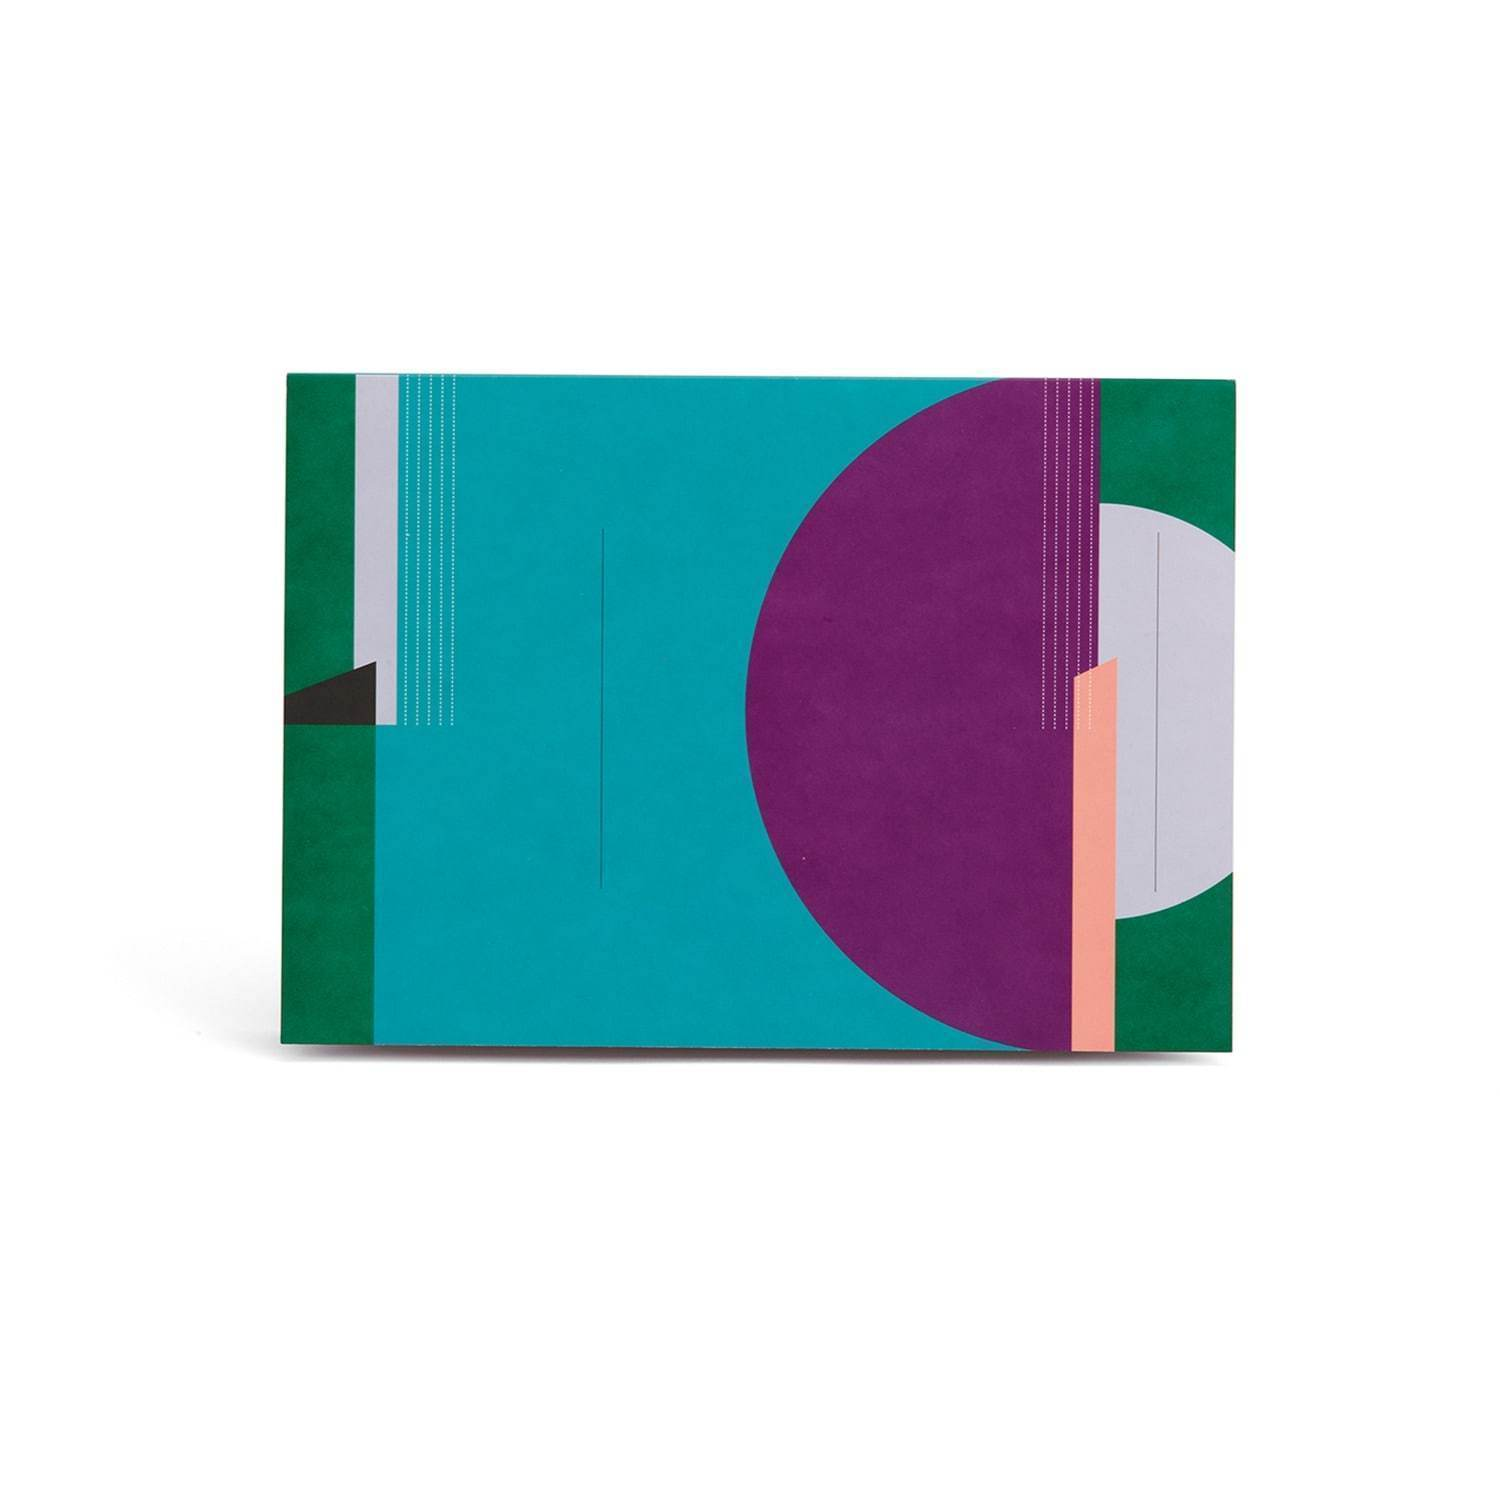 Arty Sketchpad-Homeware-HOUSE of BOTTA